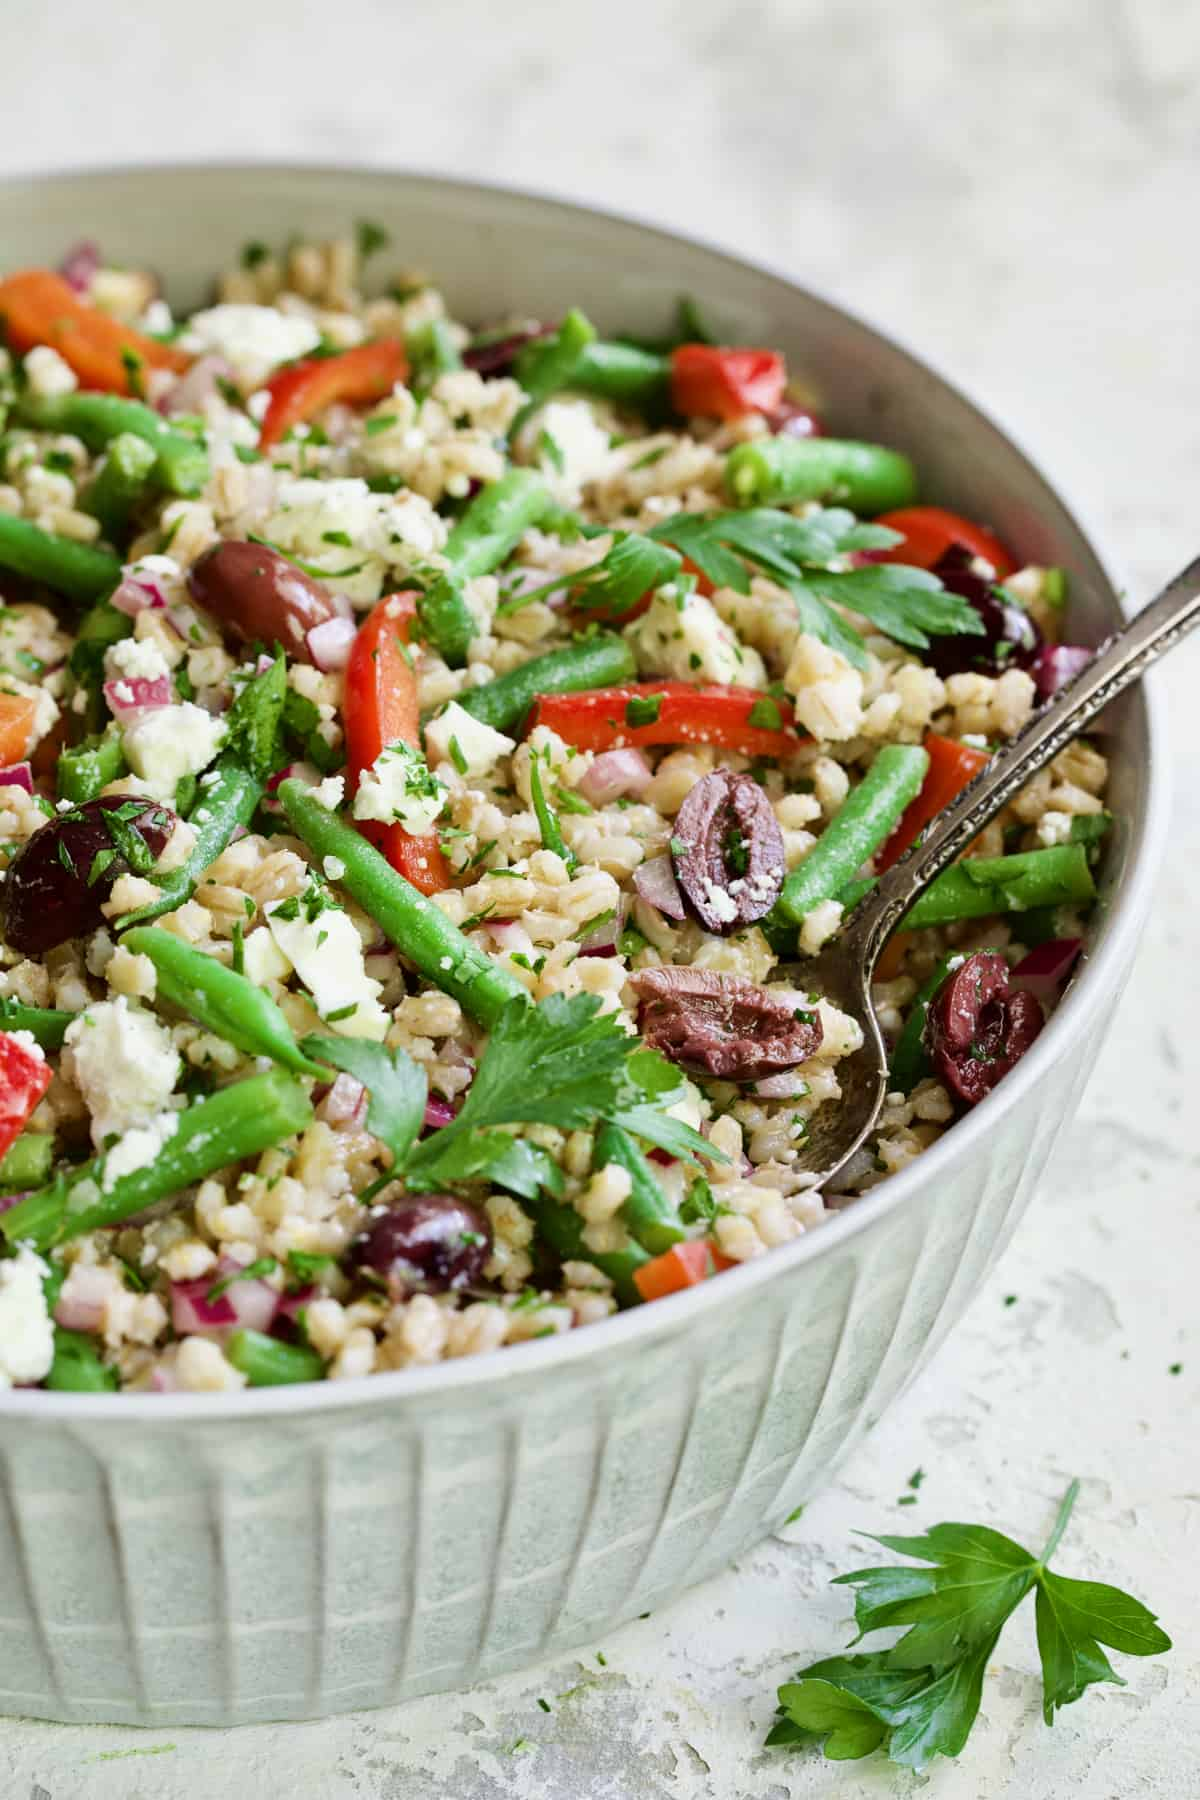 Mediterranean Barley Salad with Green Beans, Red Bell Pepper, Olives and Feta